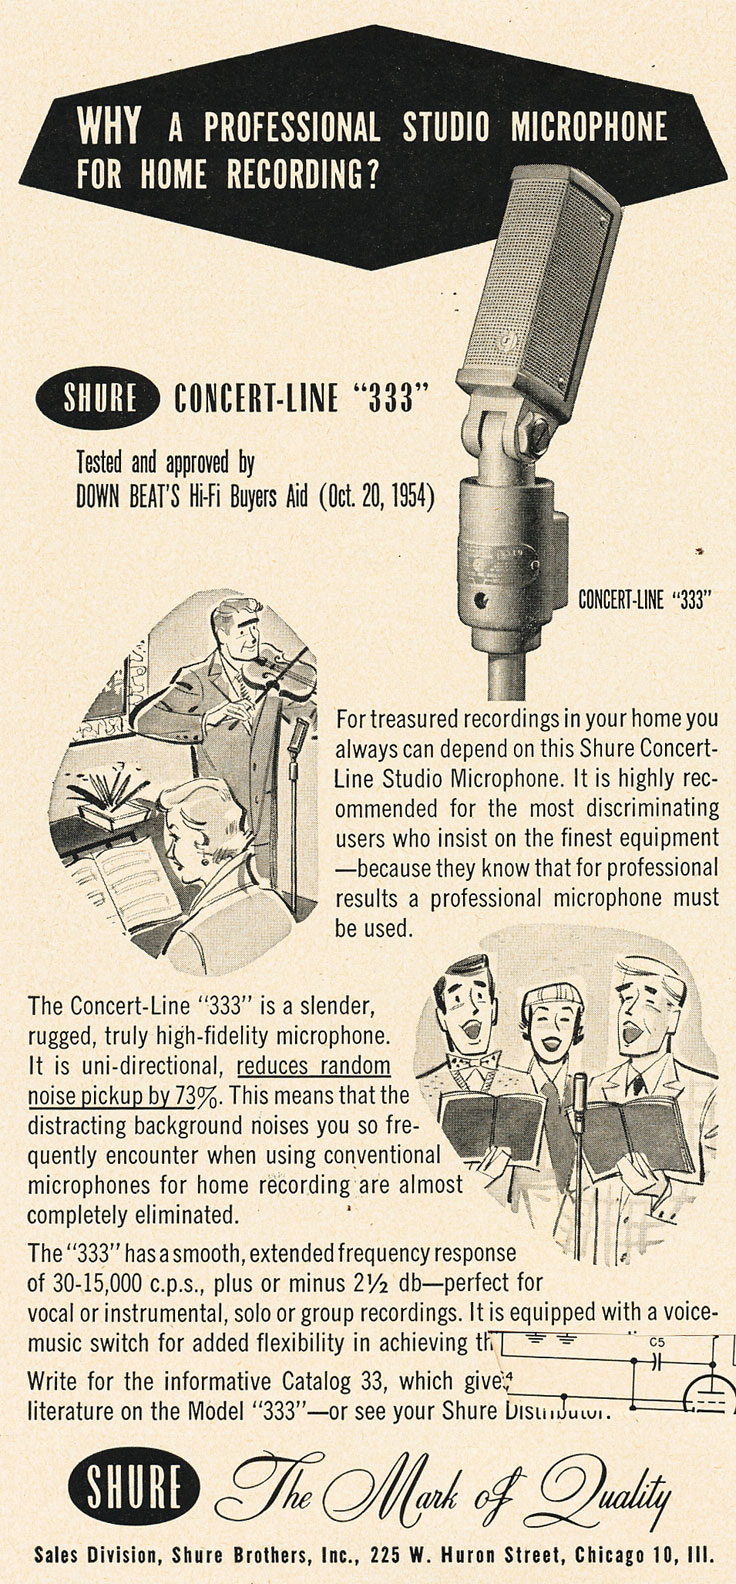 1955 Shure 333 microphone ad in Phantom Productions' vintage tape recording collection